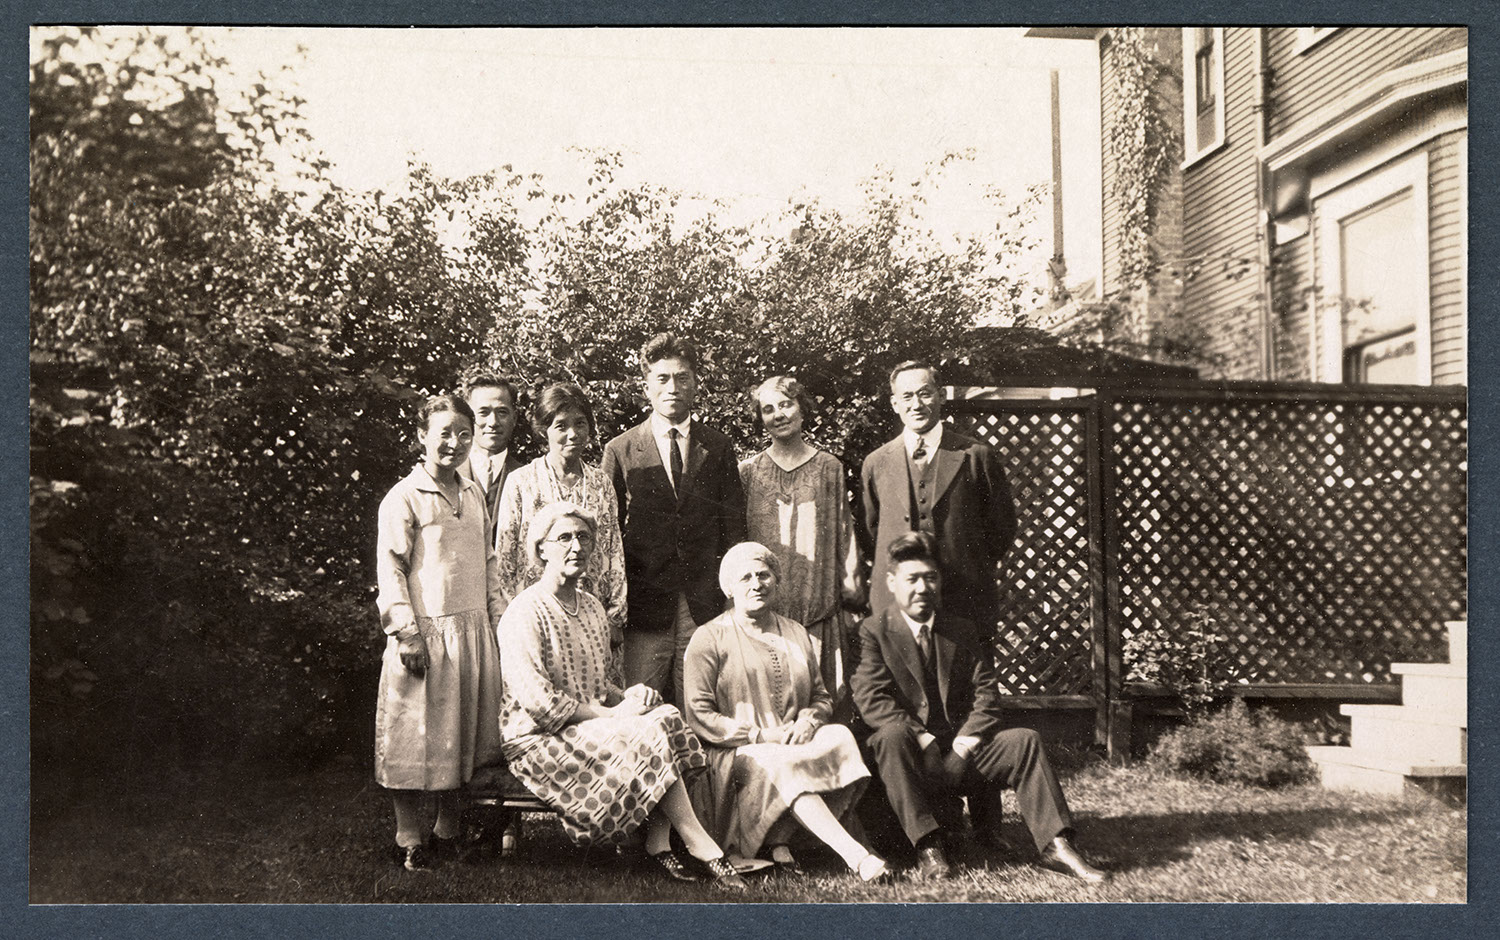 Group in the missionary residence garden, Vancouver